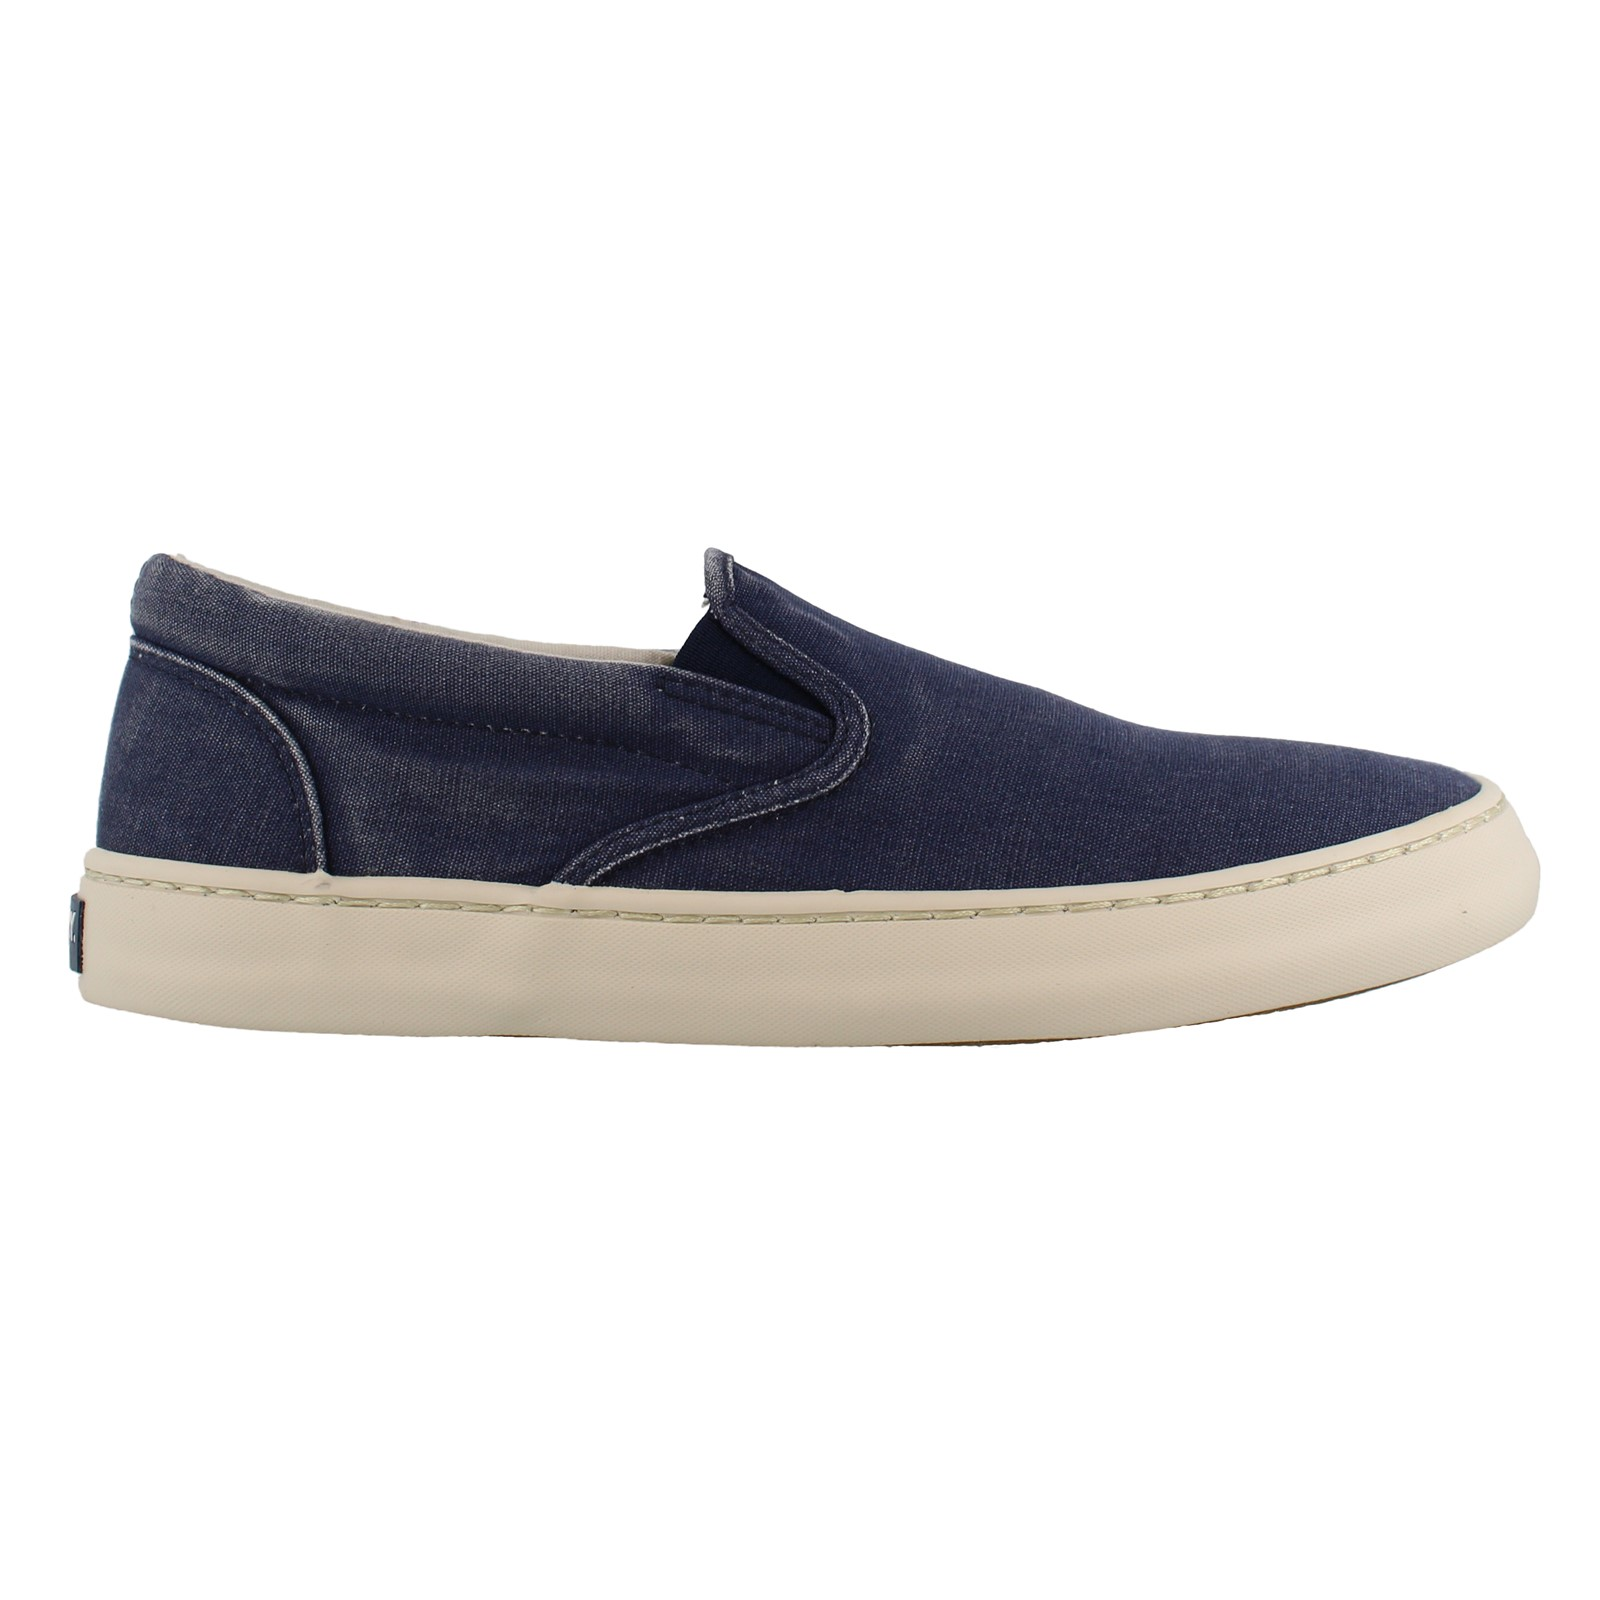 Men's Sperry, Cutter Slip on Shoes